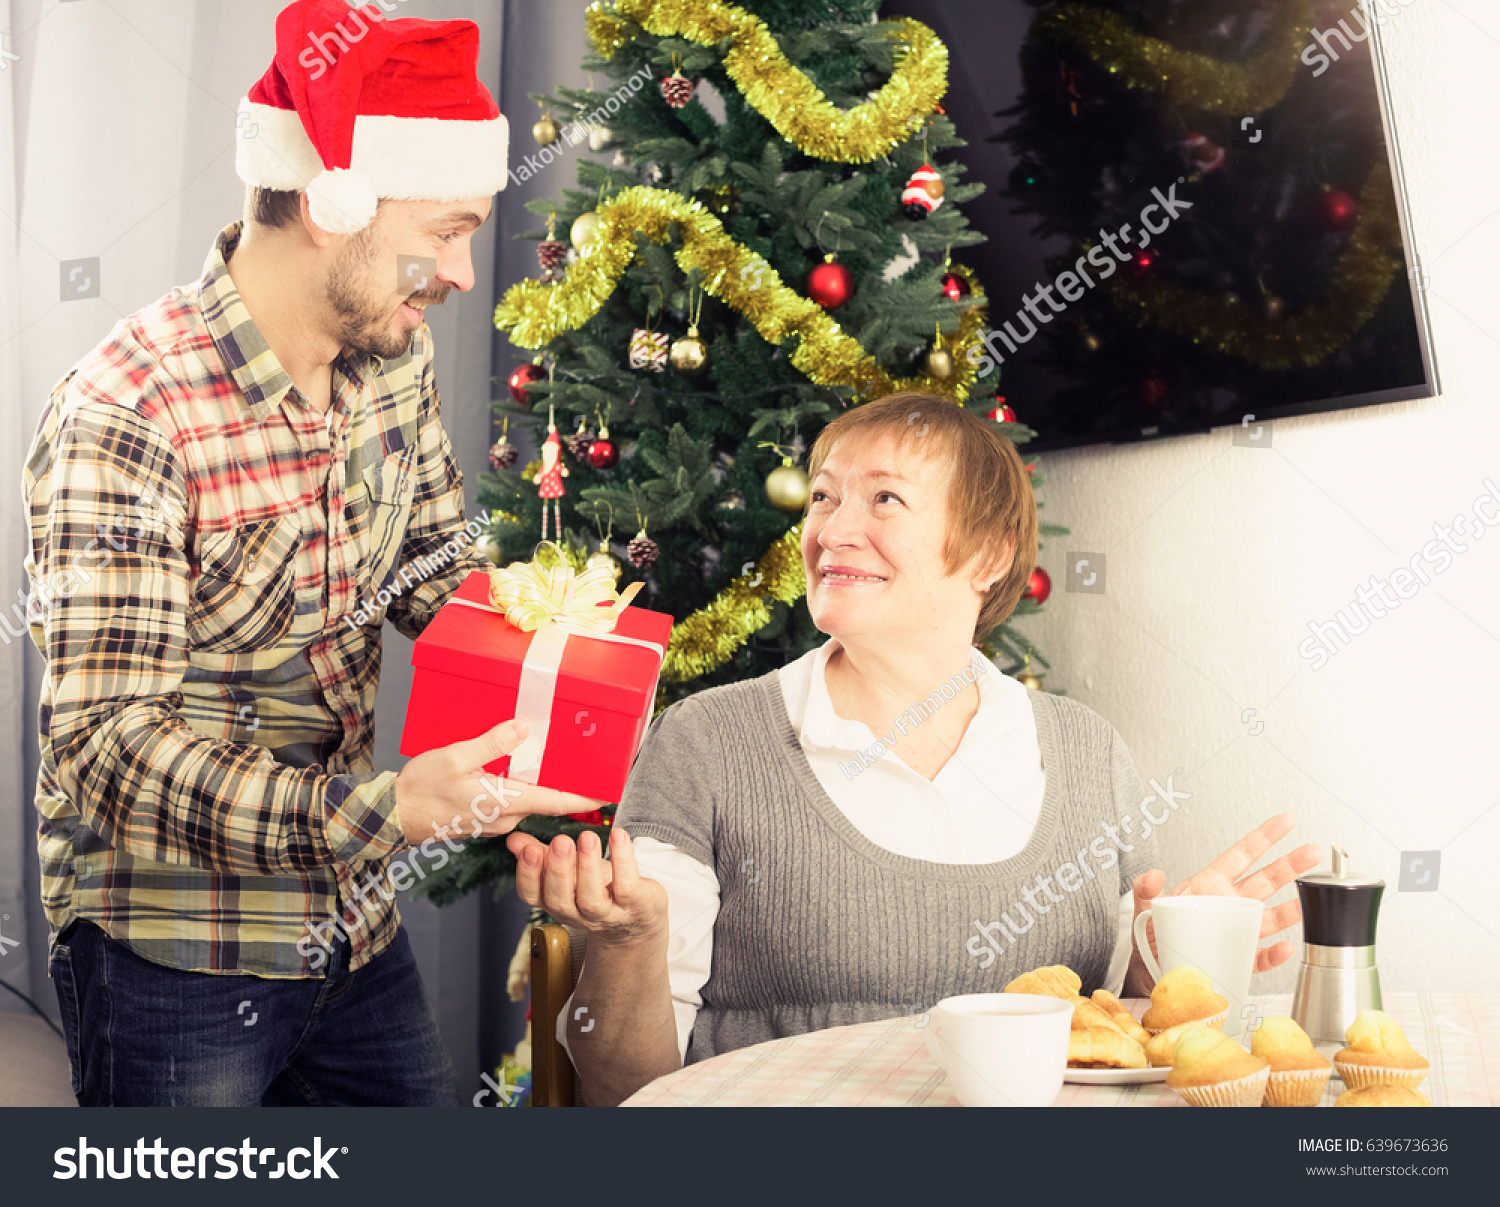 senior mother and son handing gifts to each other during christmas at home